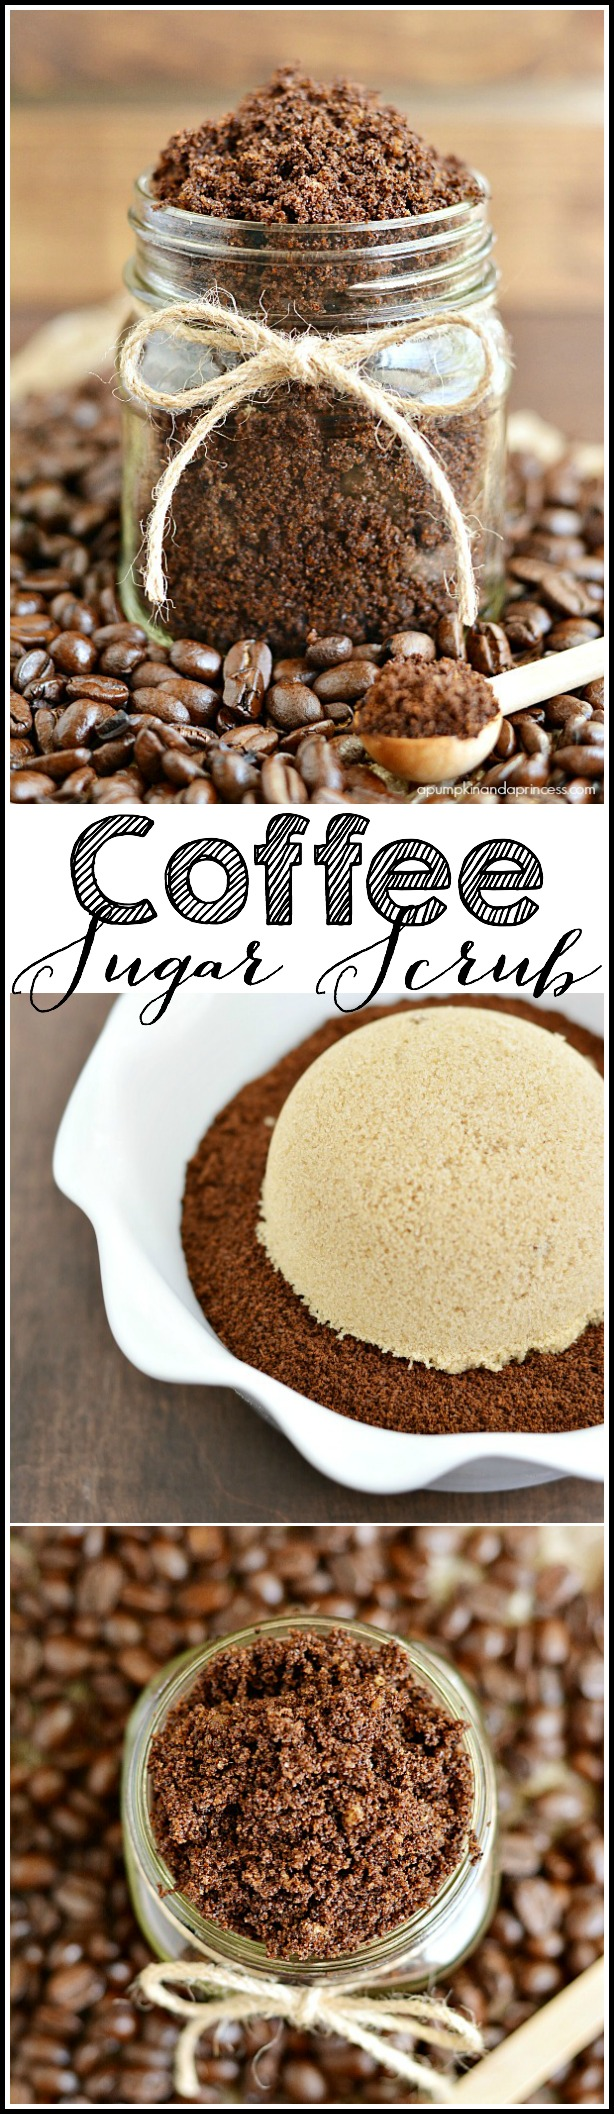 Diy Coffee Body Scrub Pinterest Diy-coffee-sugar-scrub